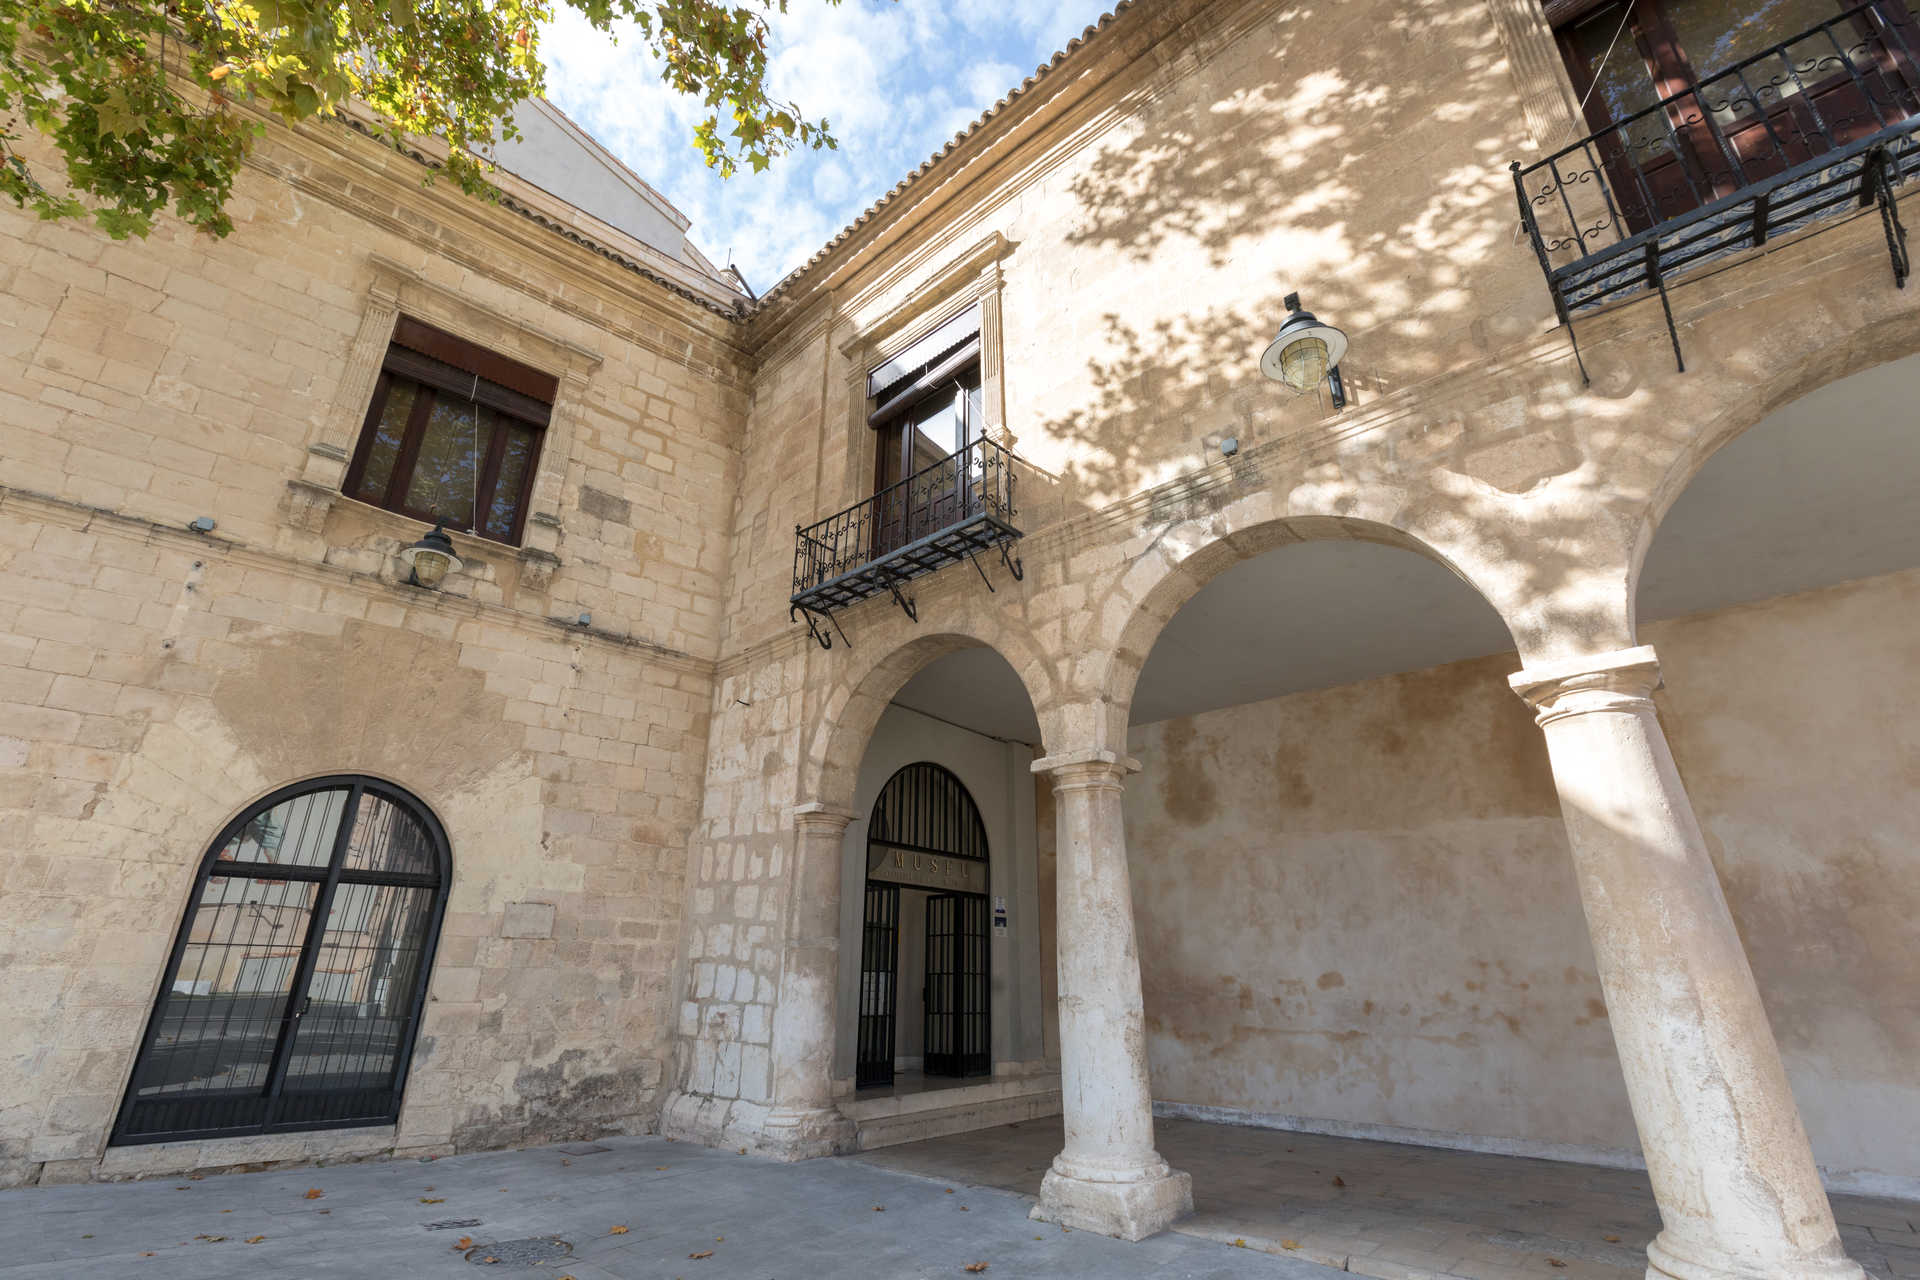 Archaeological Museum Camil Visedo